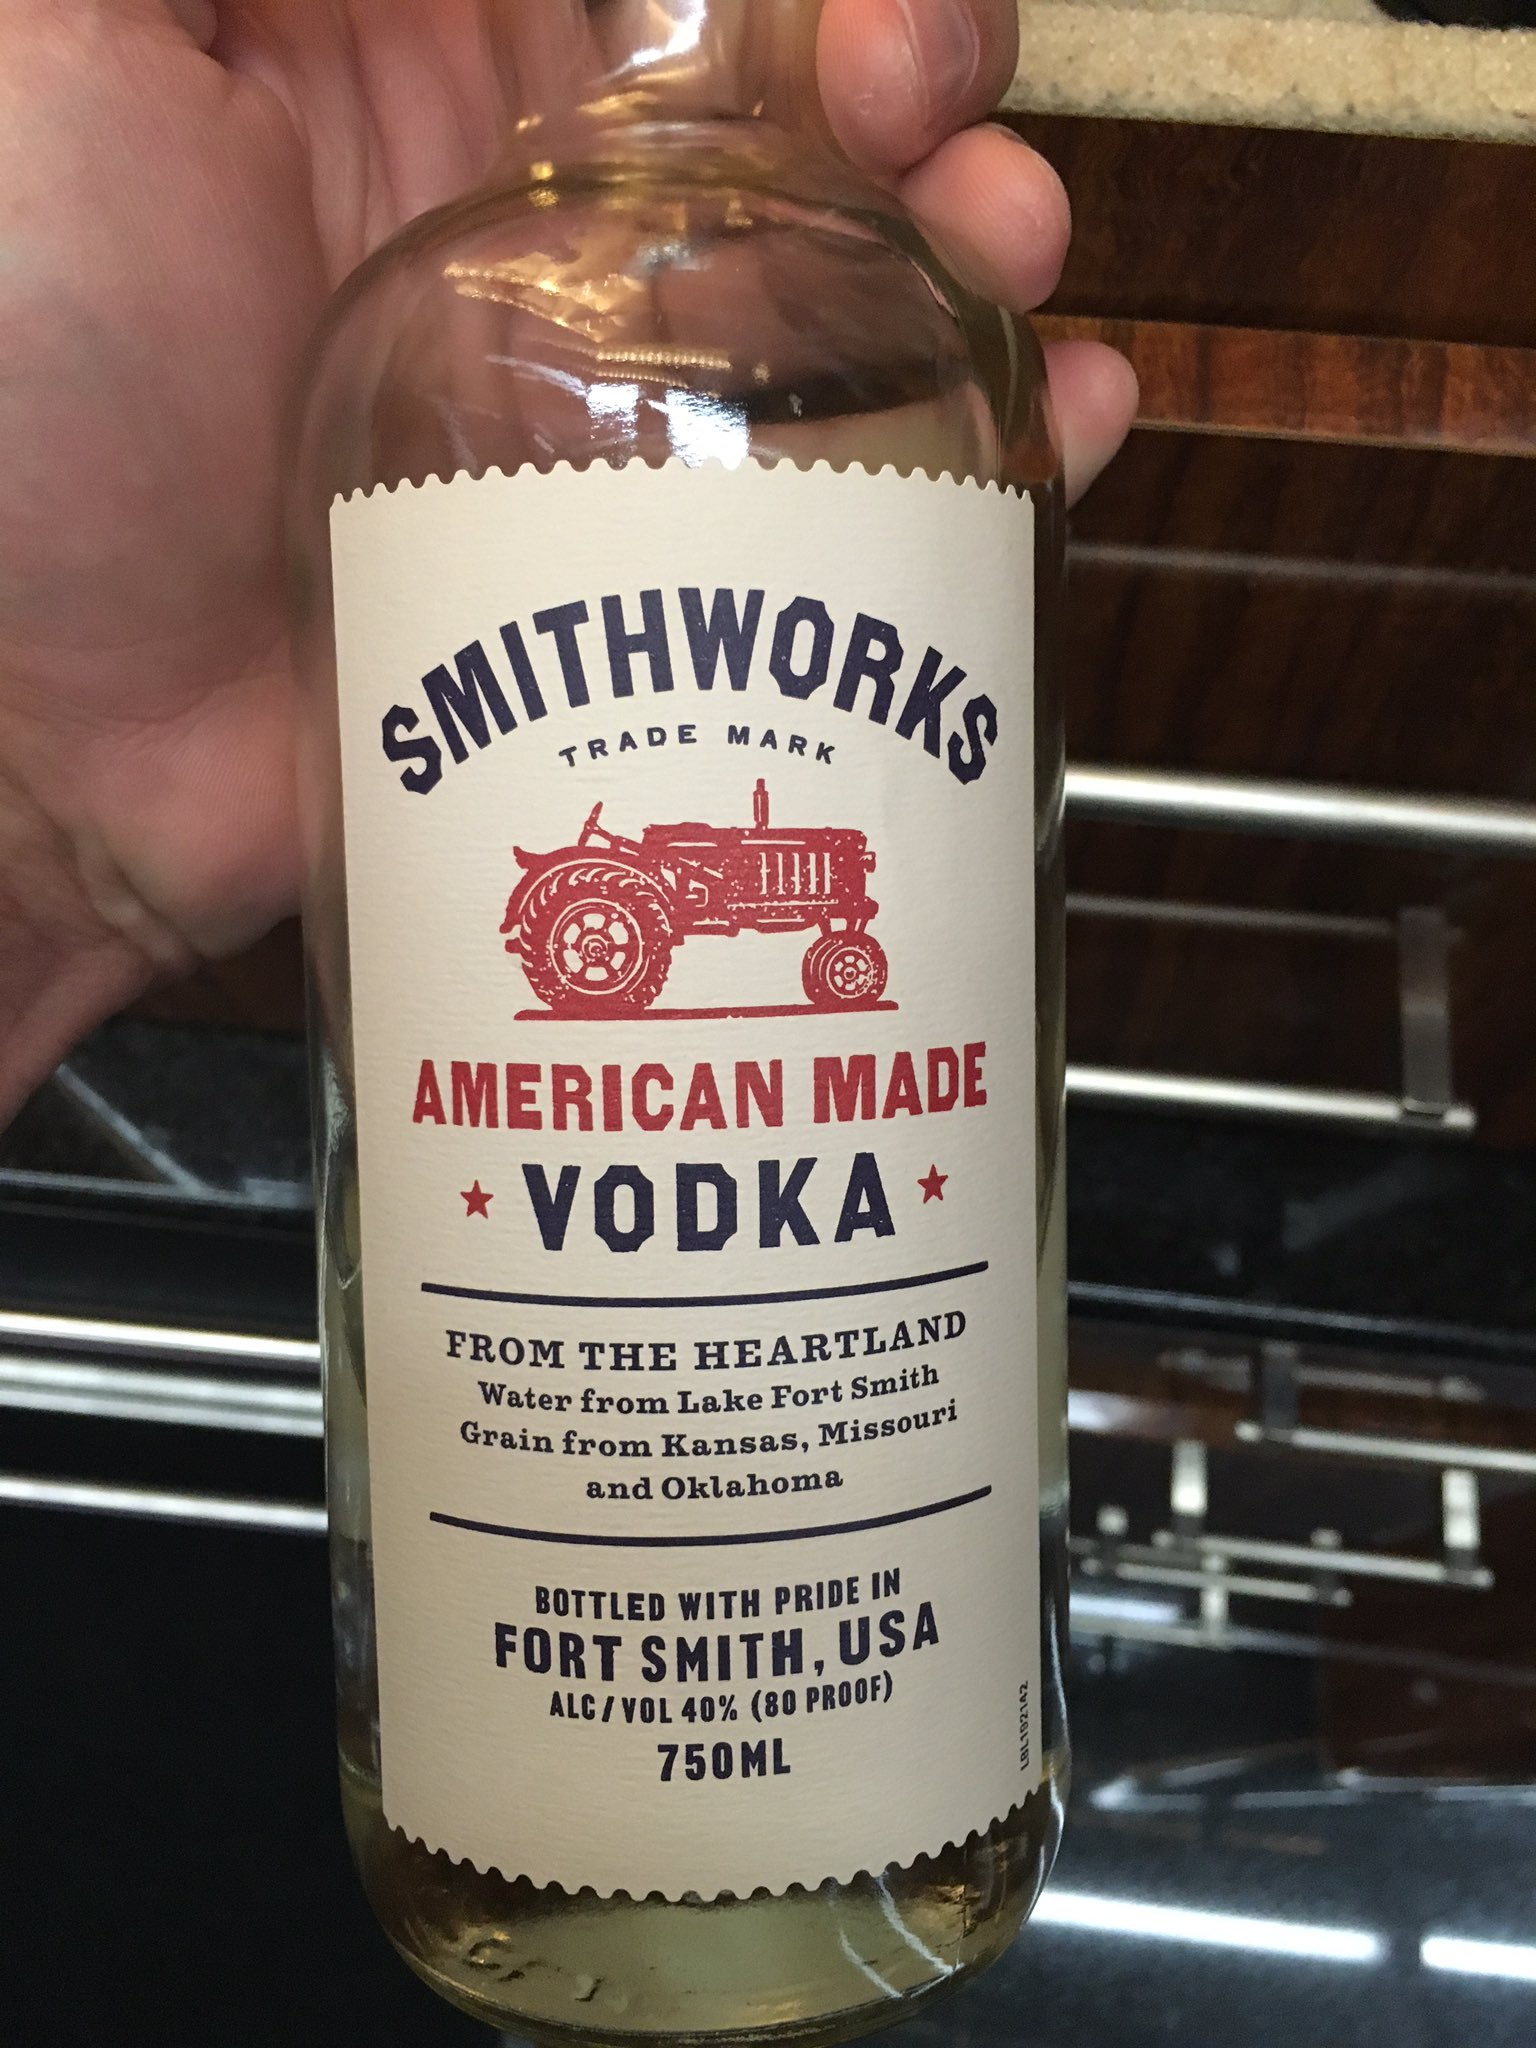 Me and my @SmithworksVodka family are getting excited about tonight!!!! https://t.co/mzTbdo78Ho